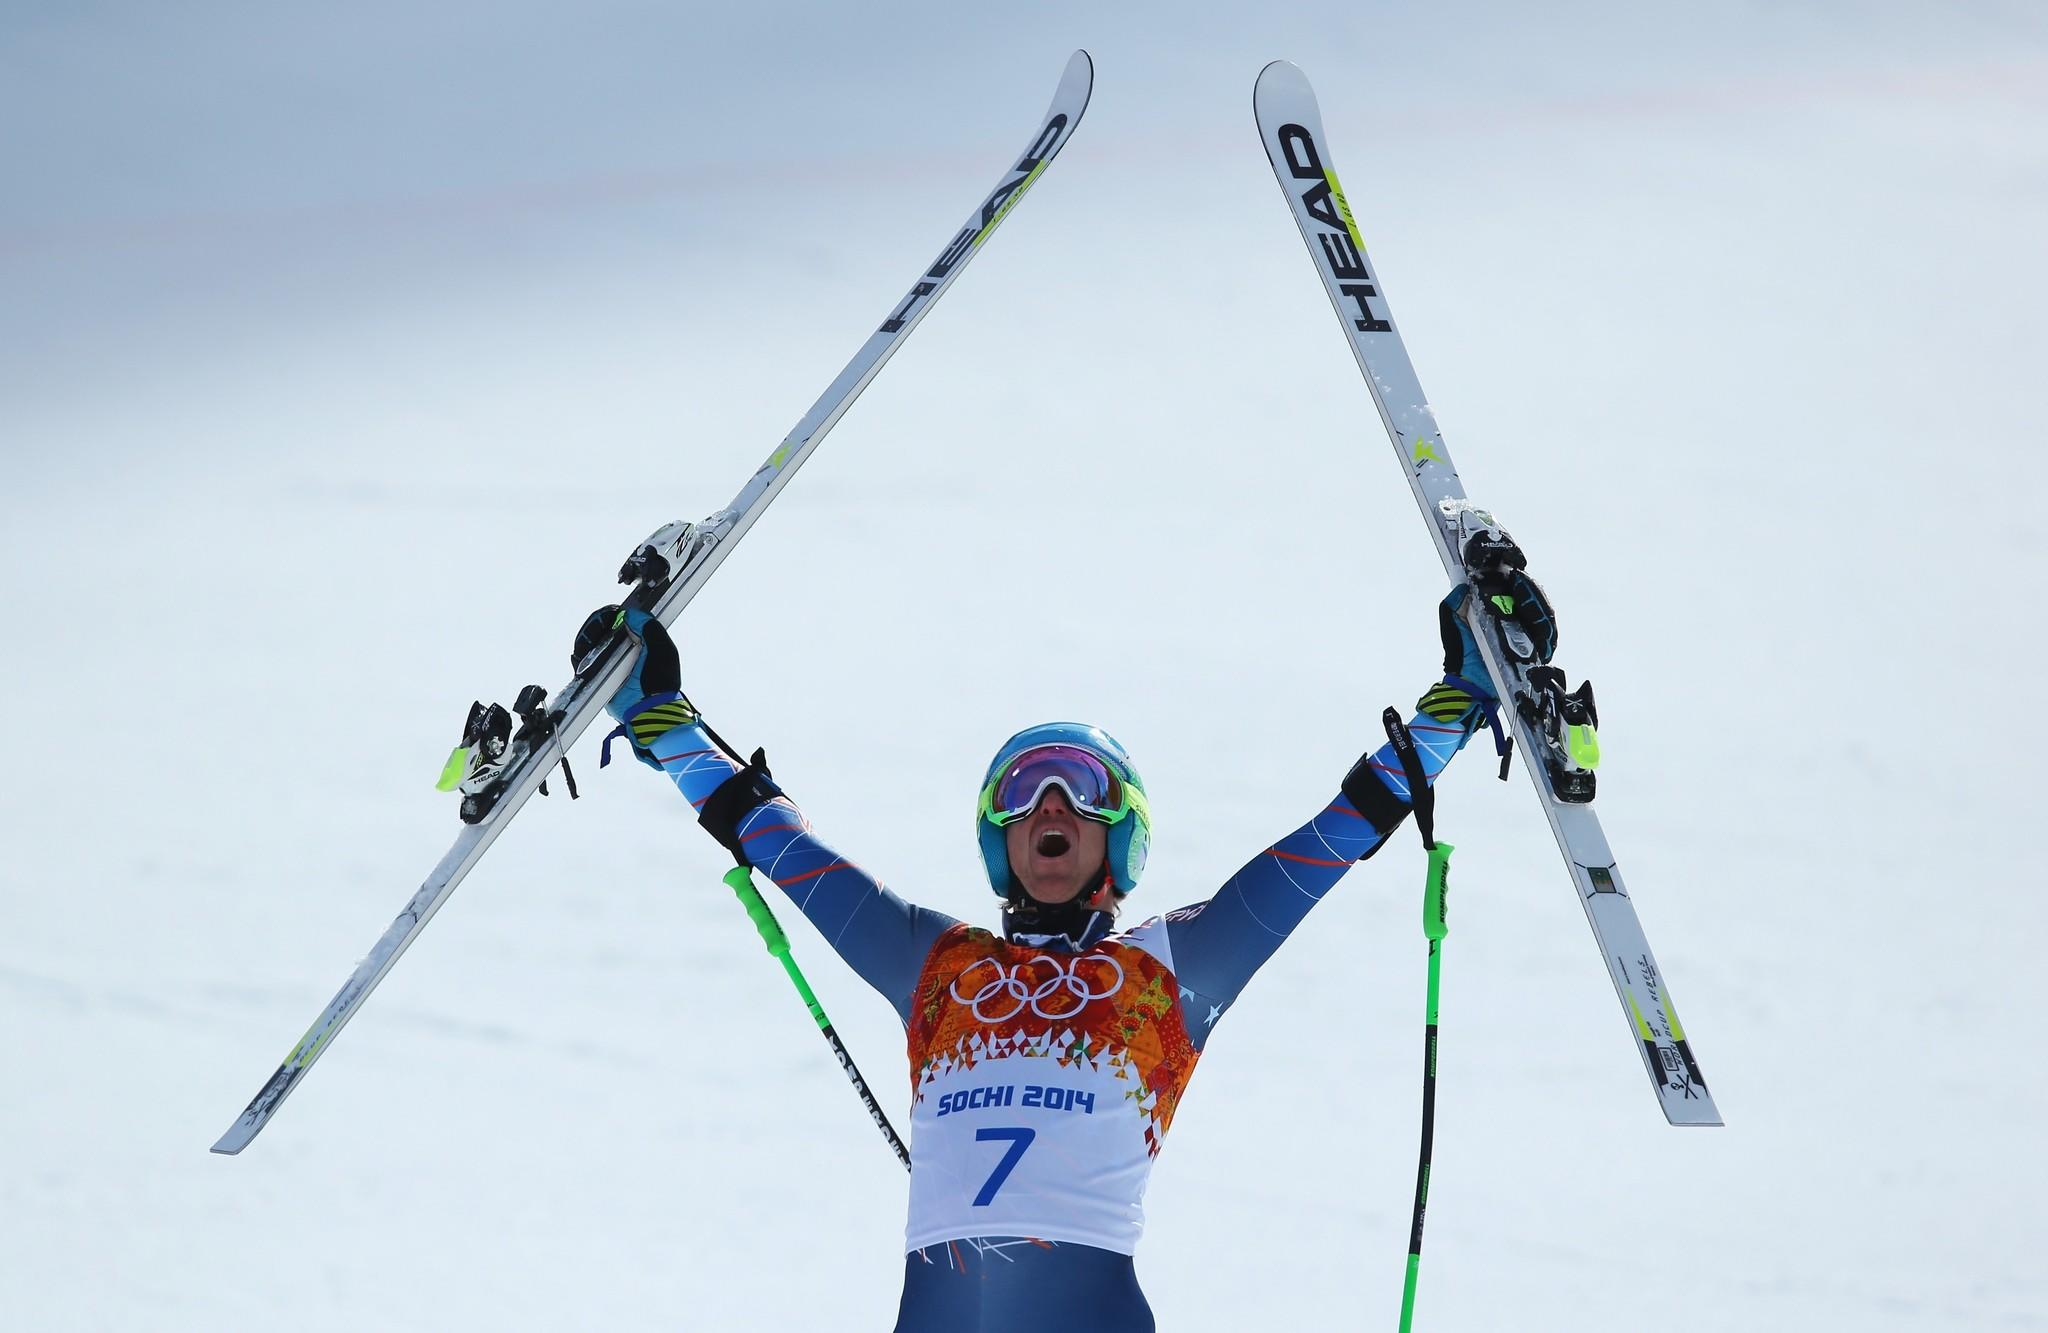 Ted Ligety won the gold medal in the giant slalom event Wednesday by a comfortable .48 second margin, claiming his first gold since 2006.